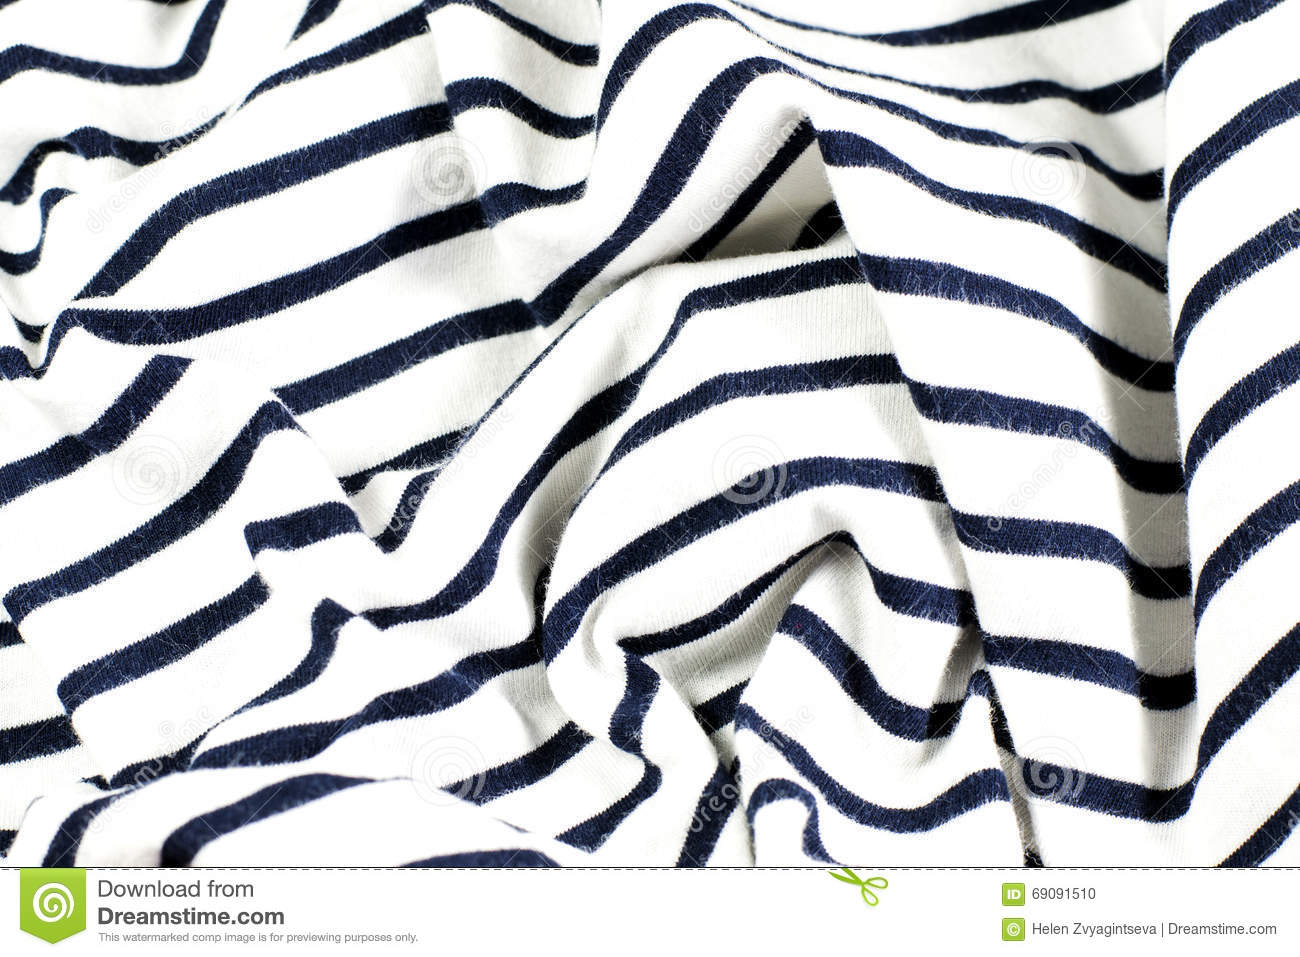 Wrinkled Black And White Striped Fabric Stock Photo Image Of